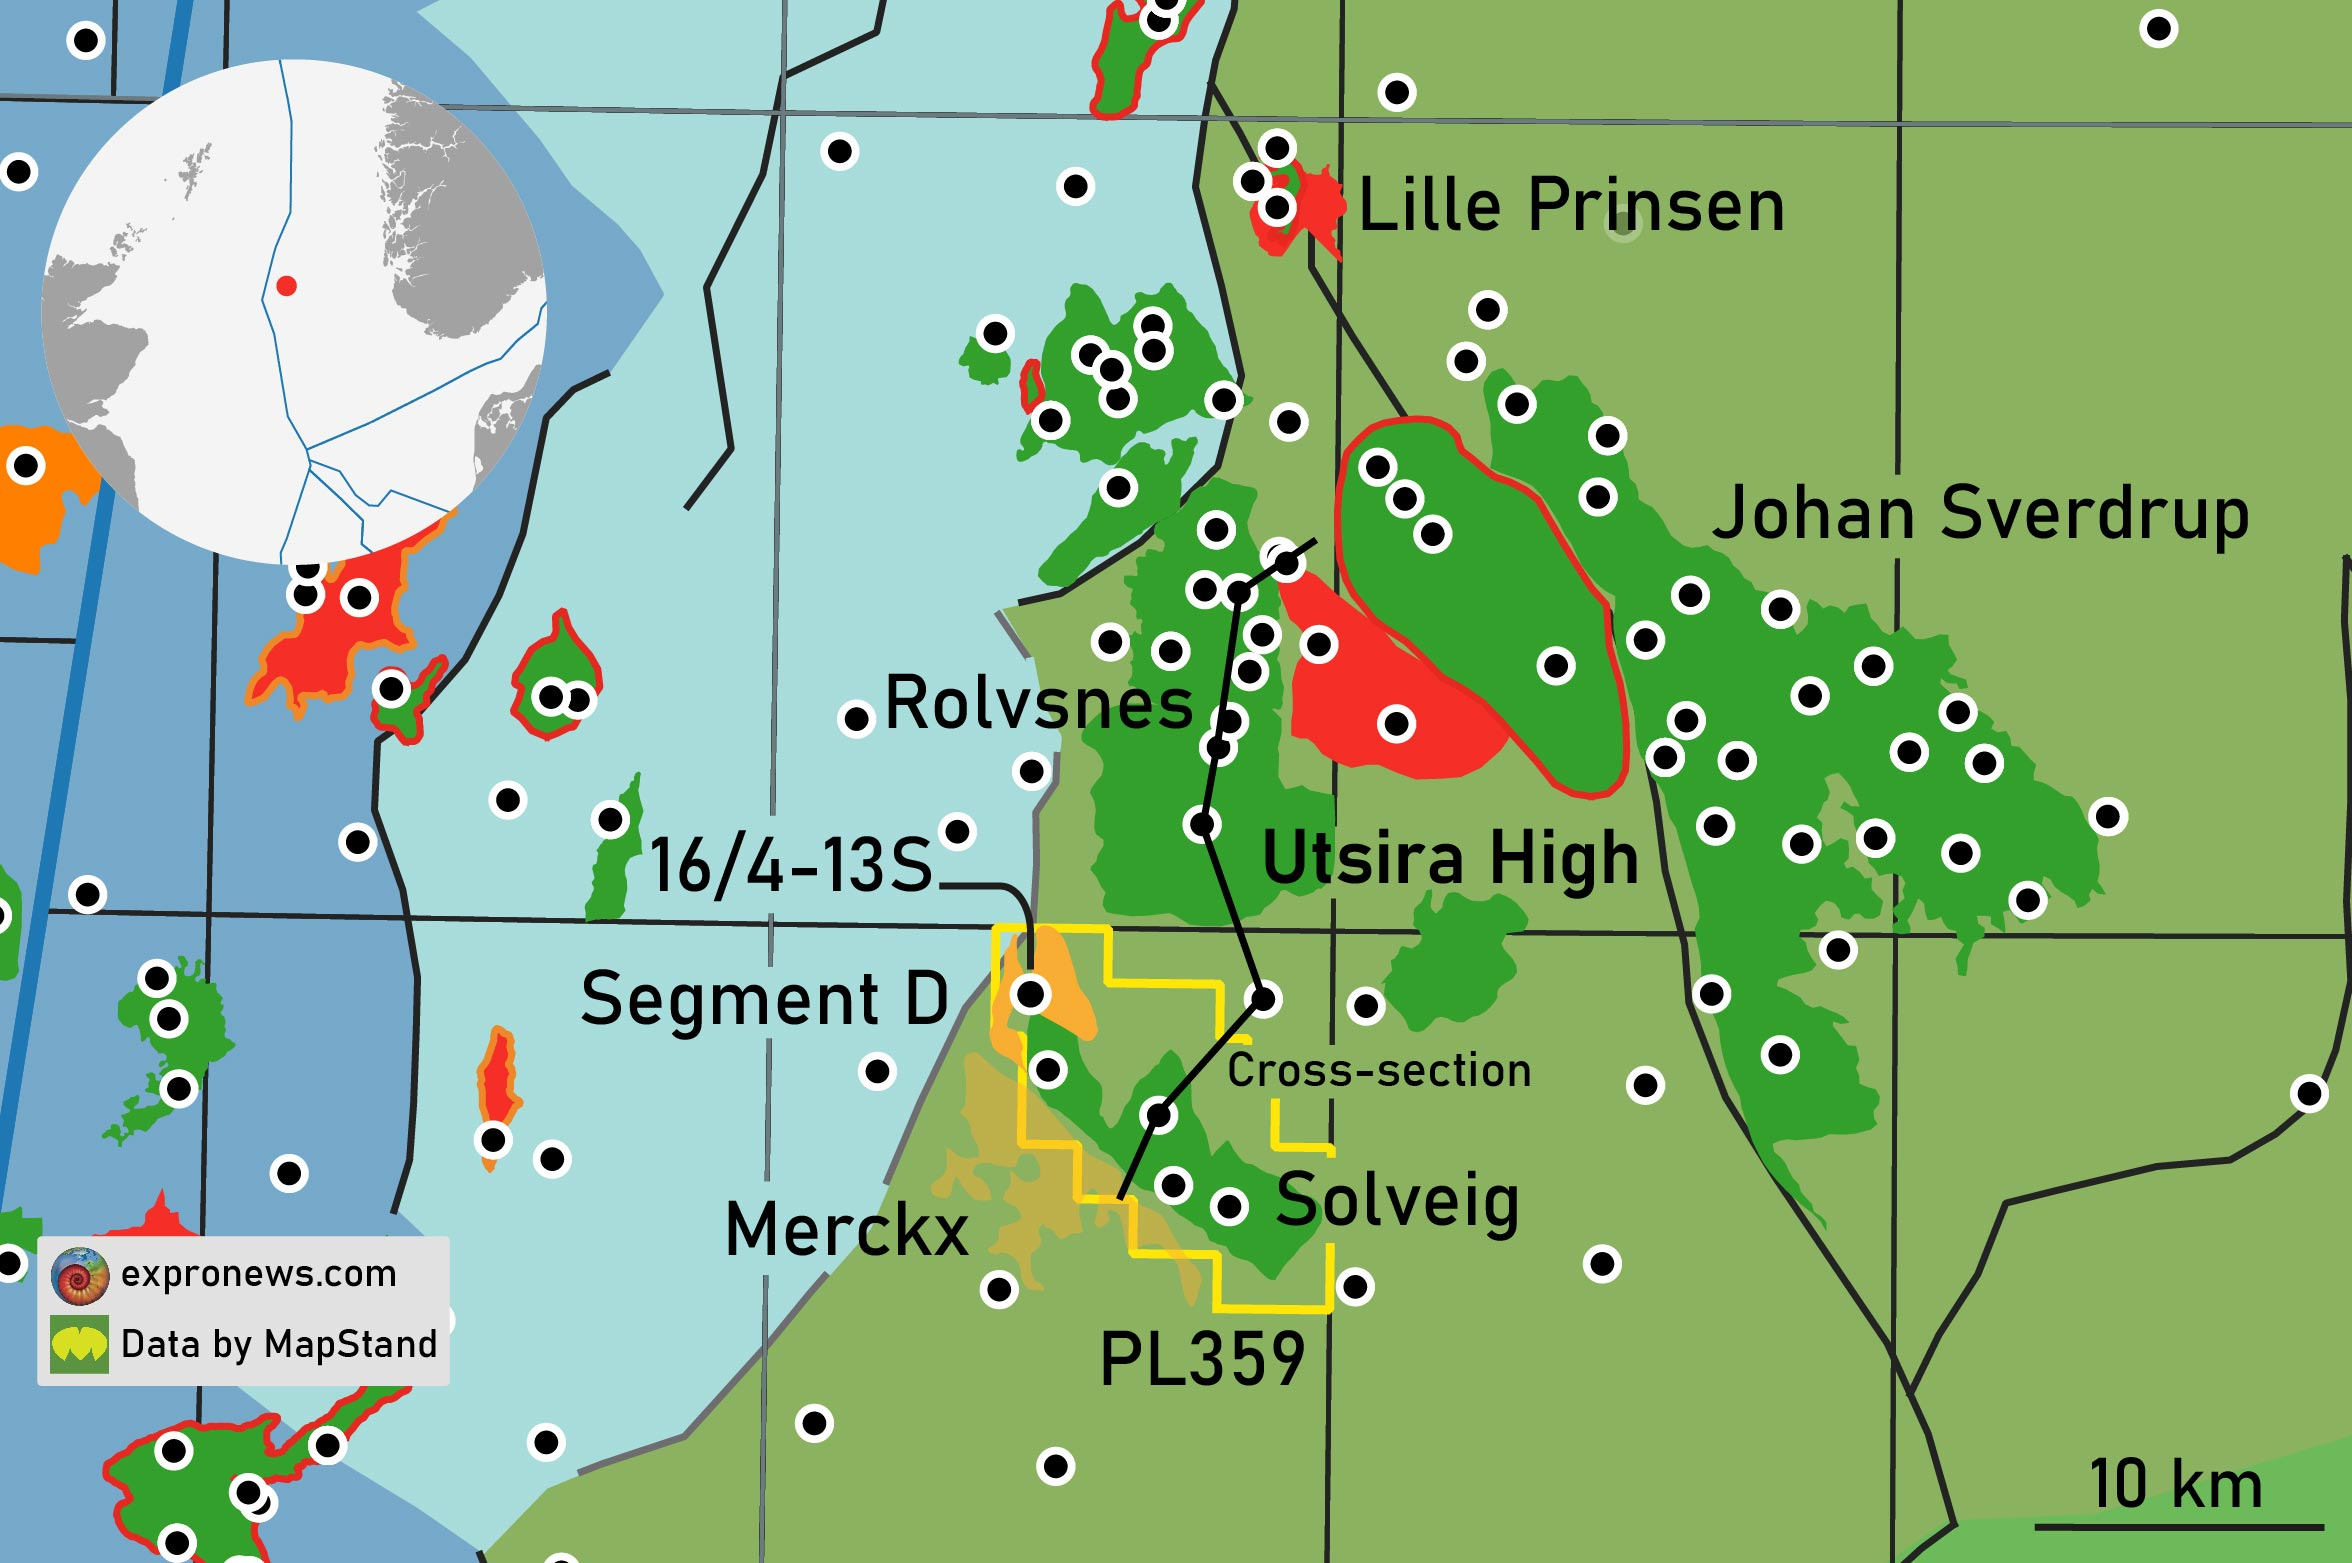 Lundin targets additional reserves near Solveig through drilling Segment D